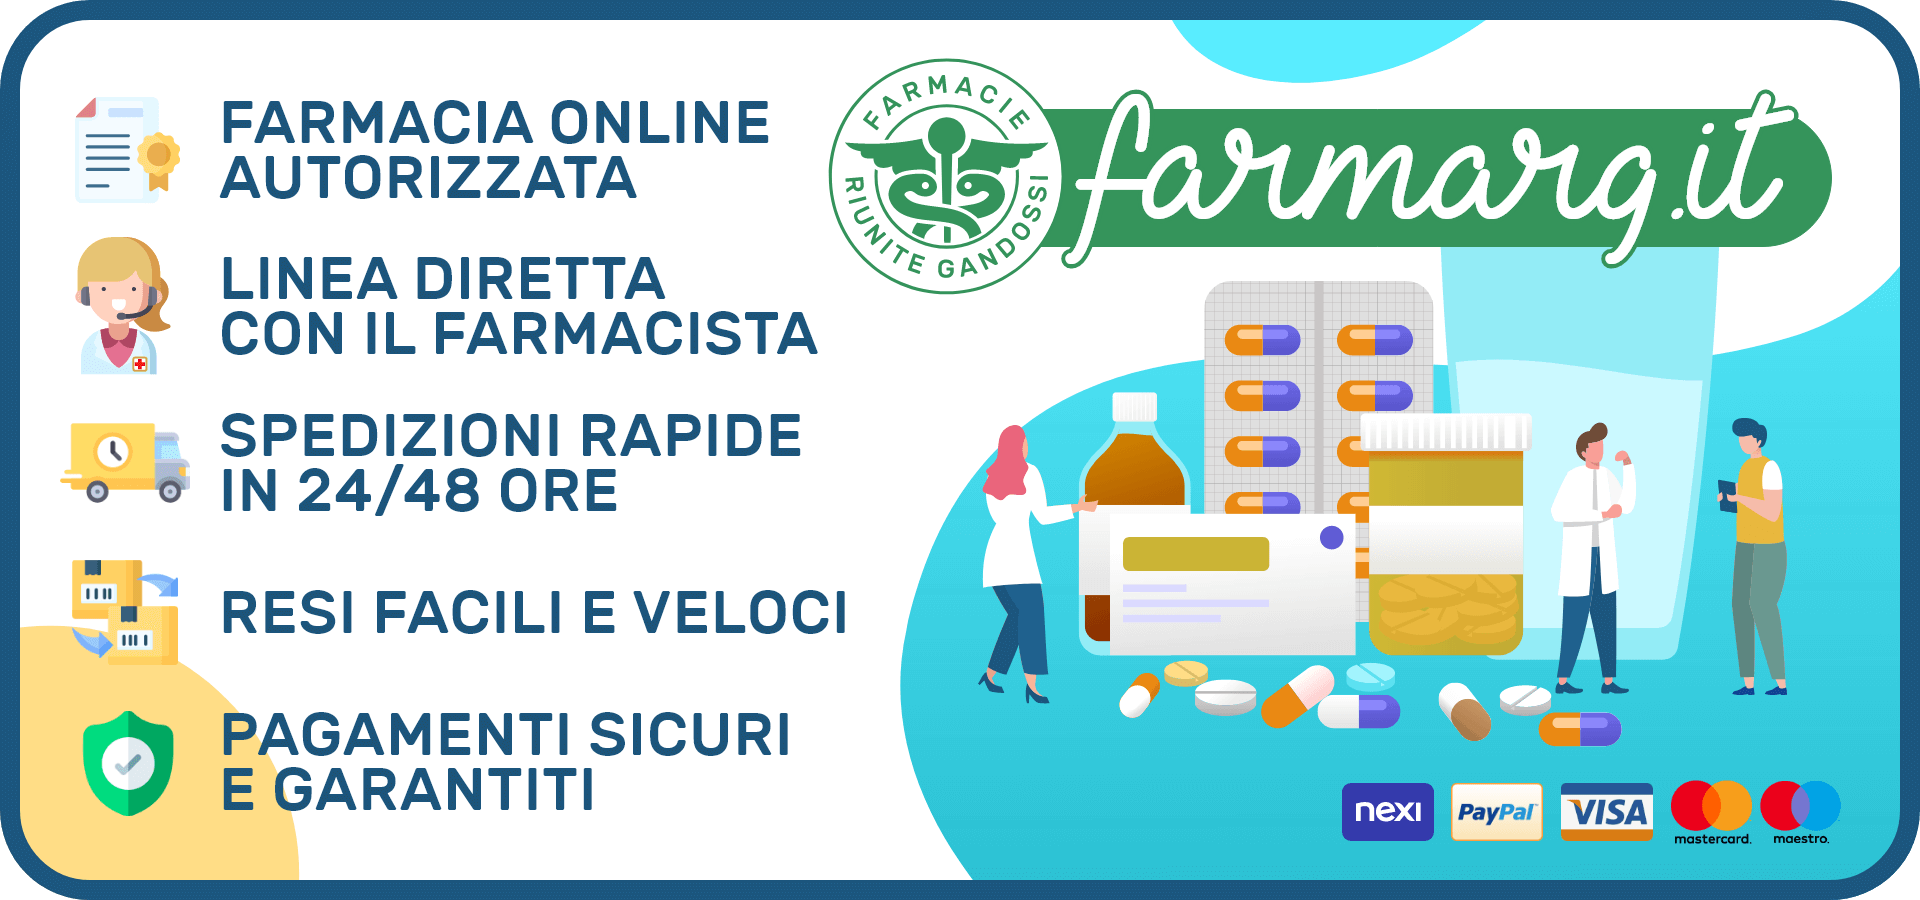 Farmacia Online FARMARG.it